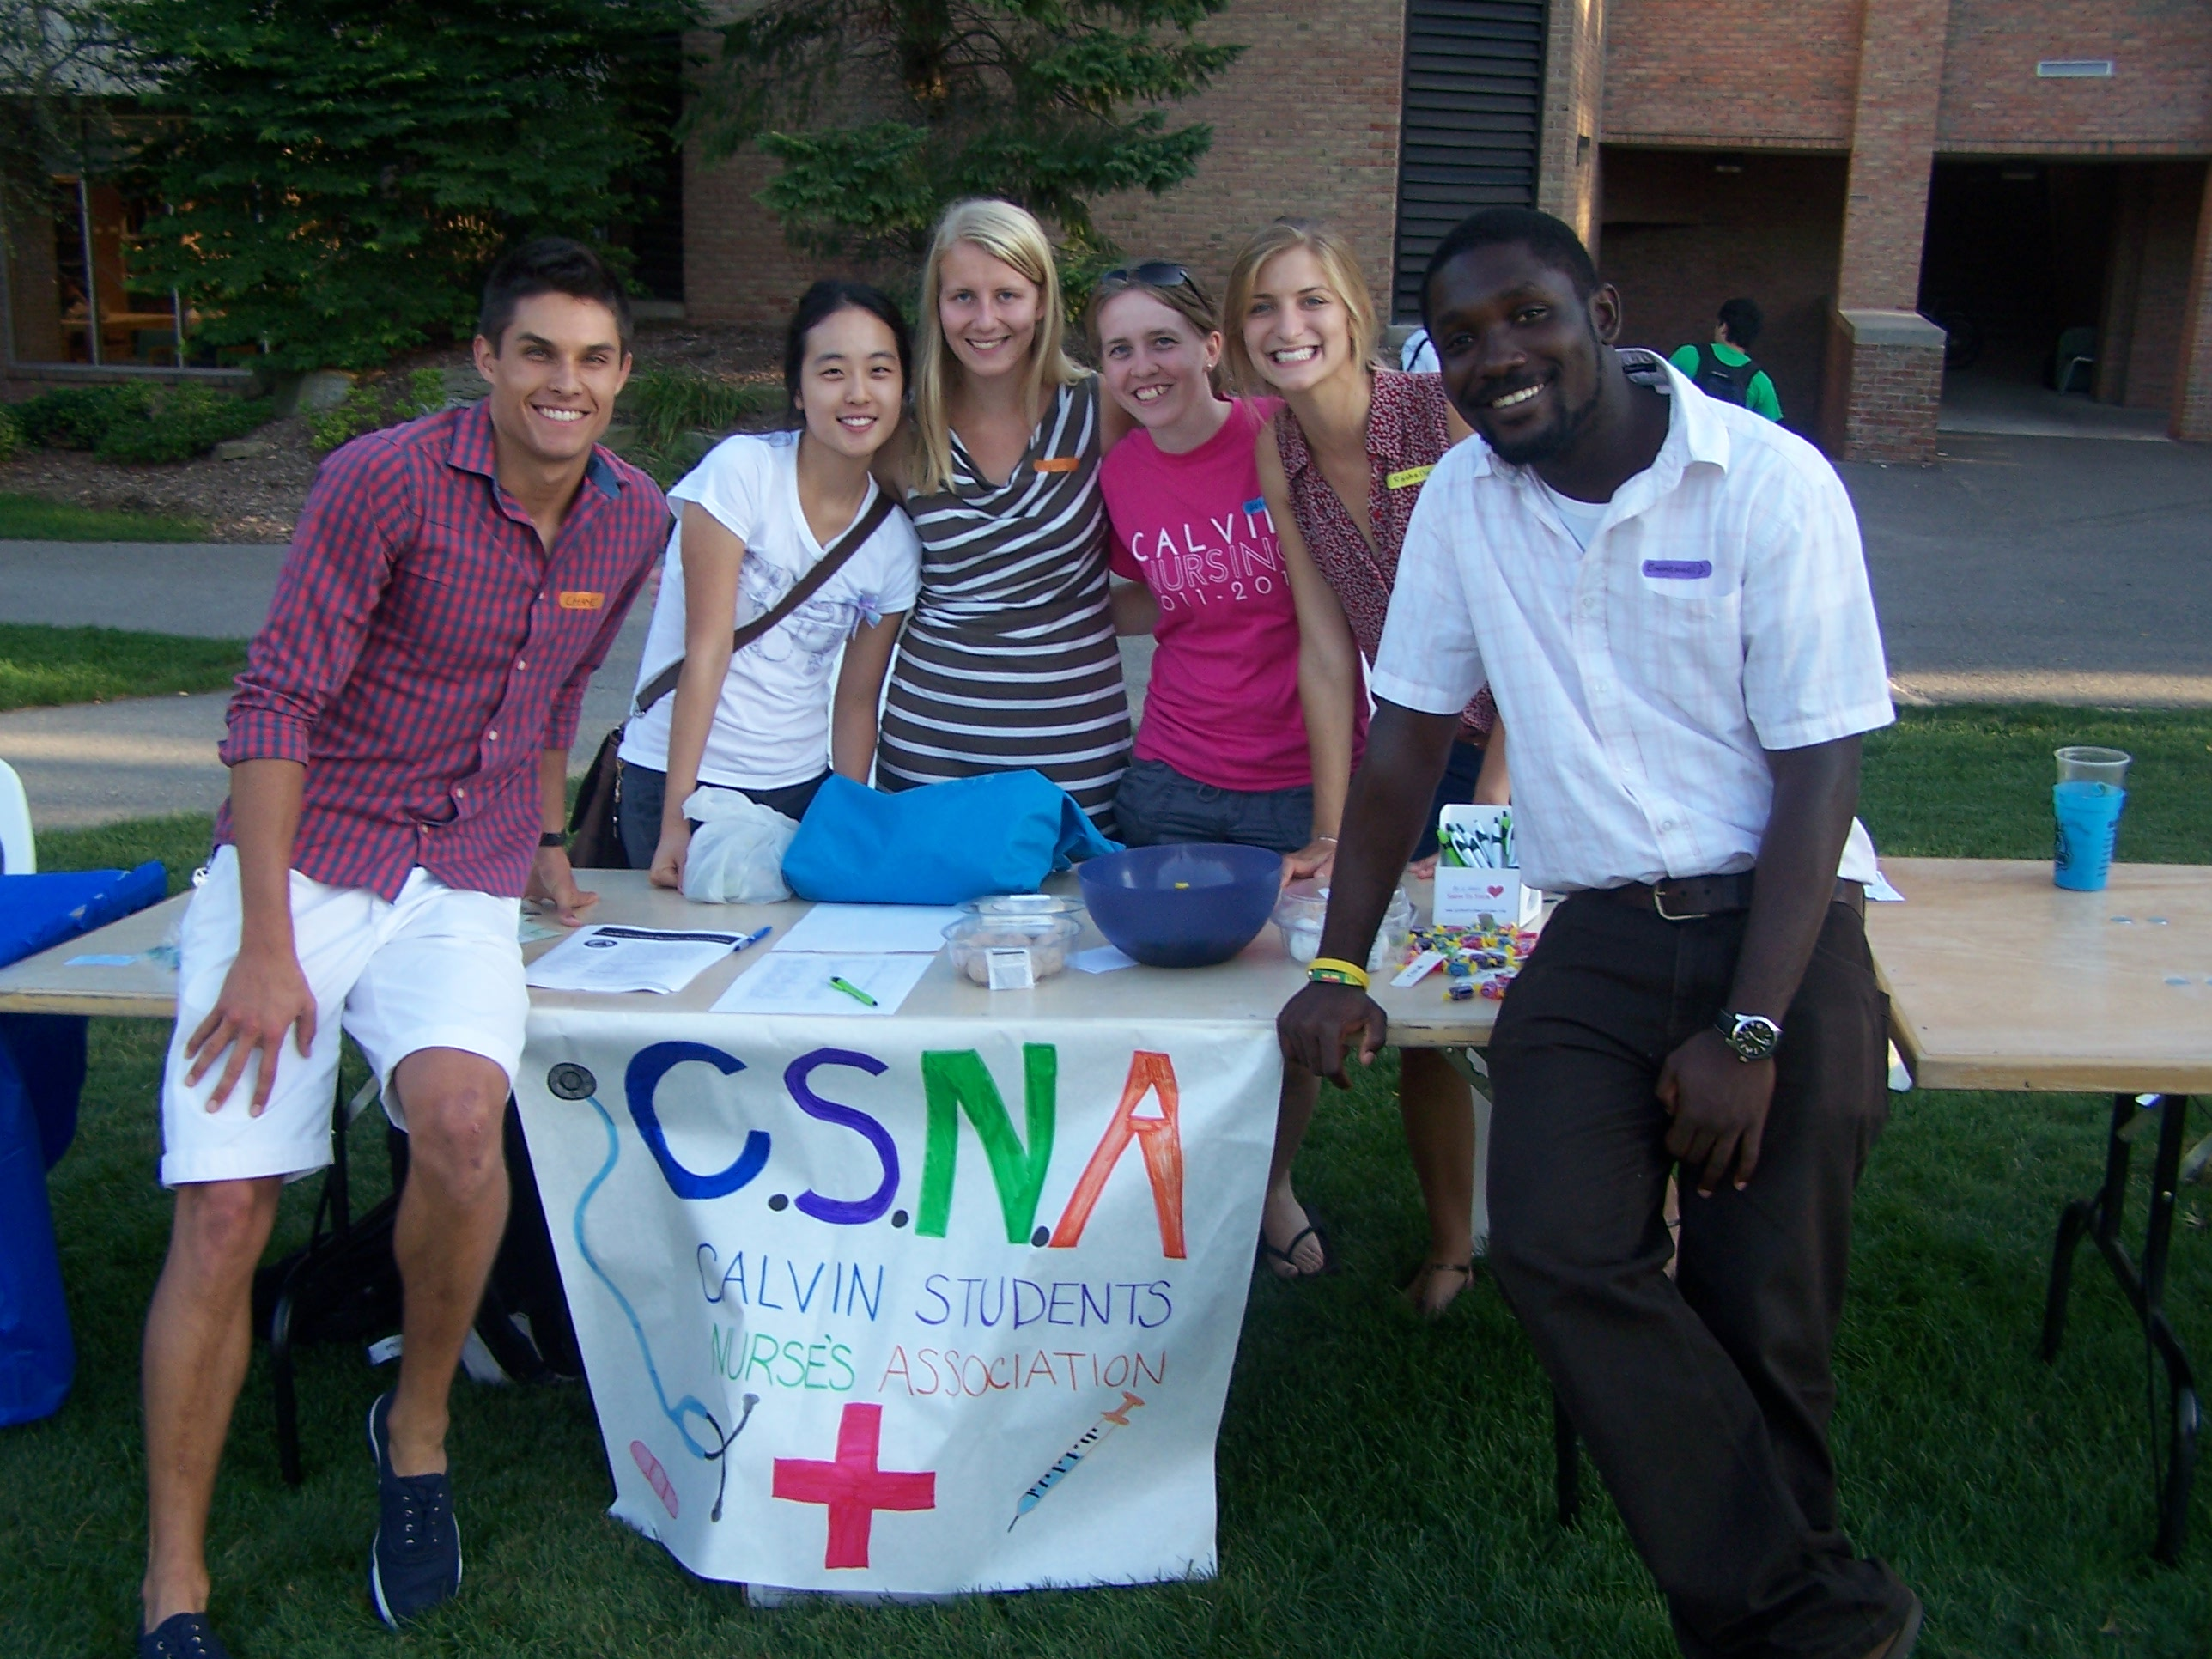 Members of the Calvin Students Nurses Association recruit new members at Cokes and Clubs. Photo by Connor Sterchi